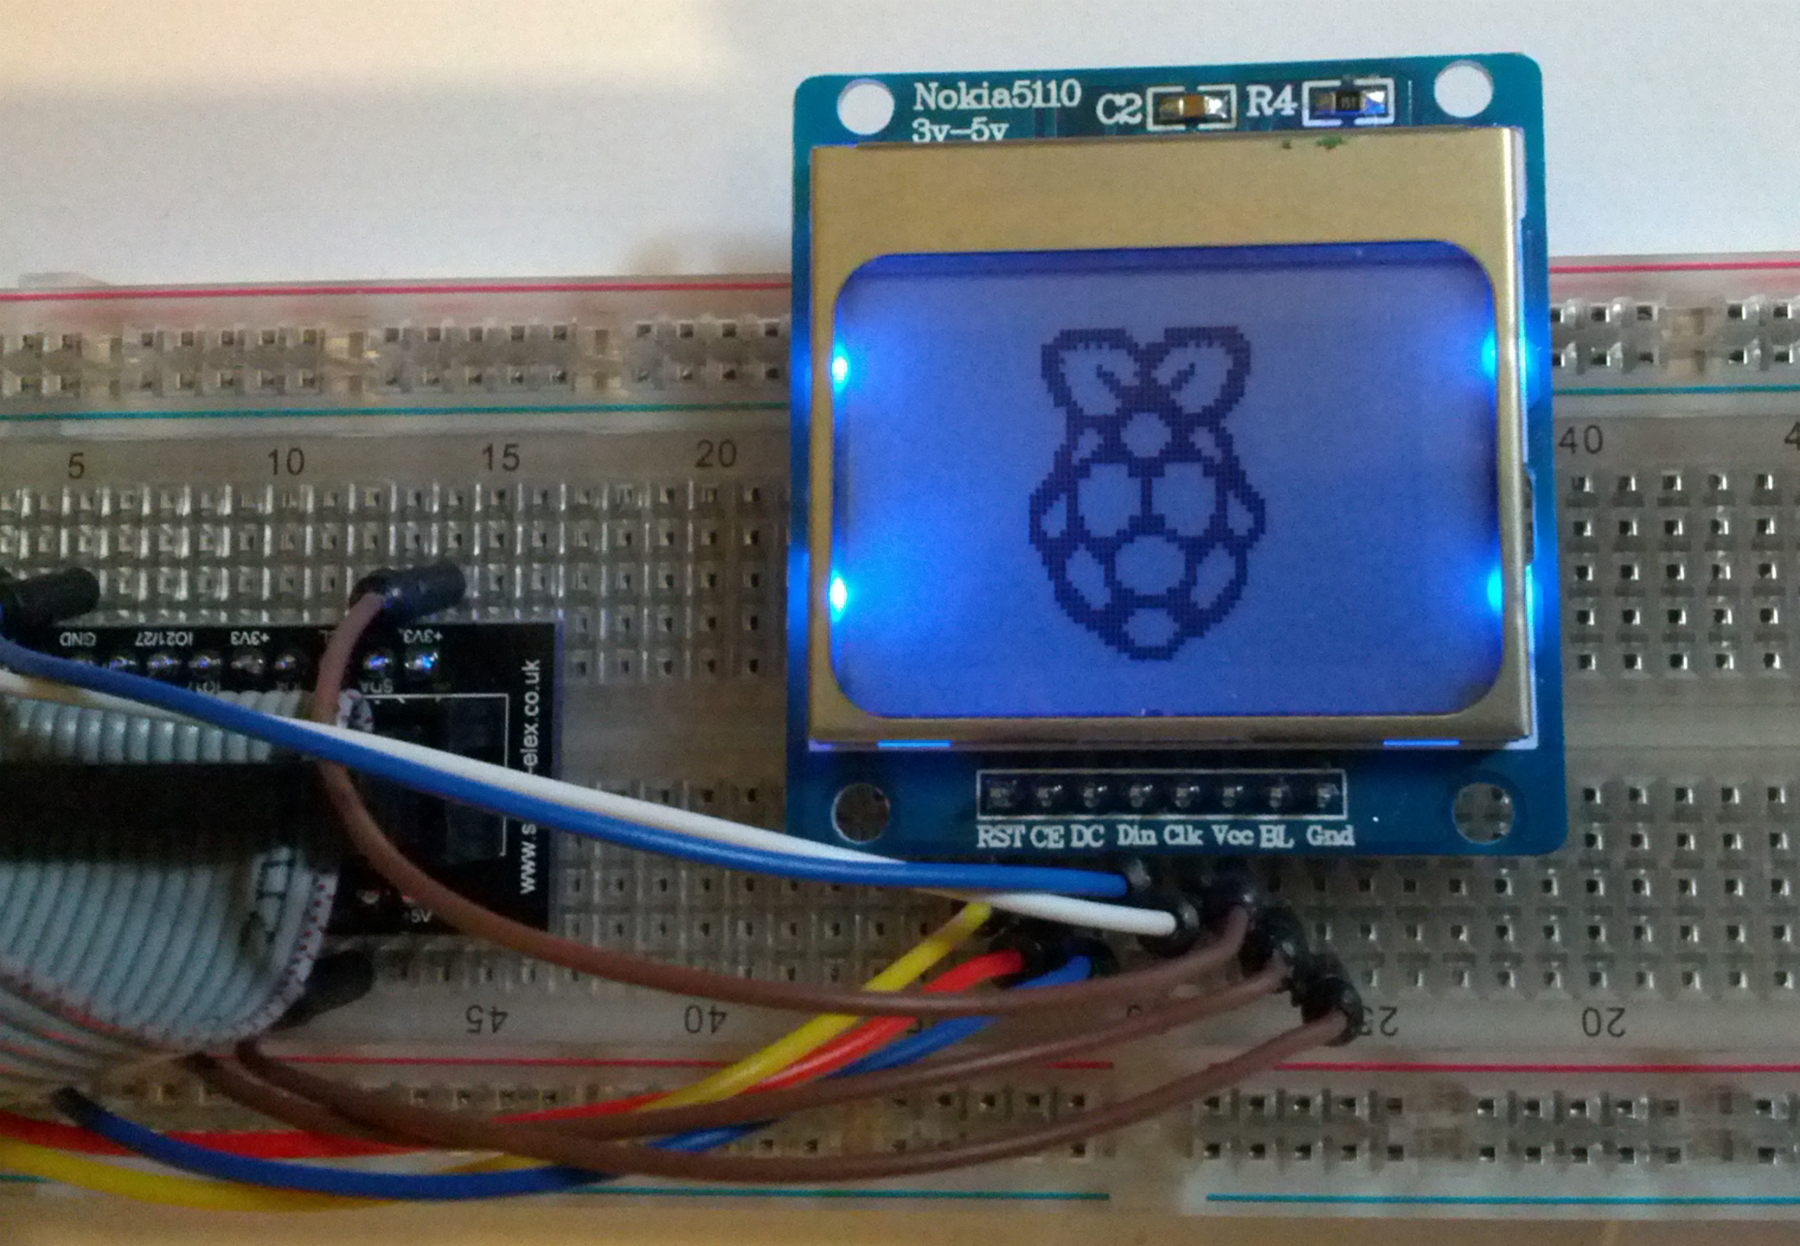 Lcd Display With Raspberry Pi Wiringpi Python Module If You Dont See Anything Or Only The Backlight Is On Try Reconnecting Pins I Myself Did Few Mistakes Wiring Before Got It Working